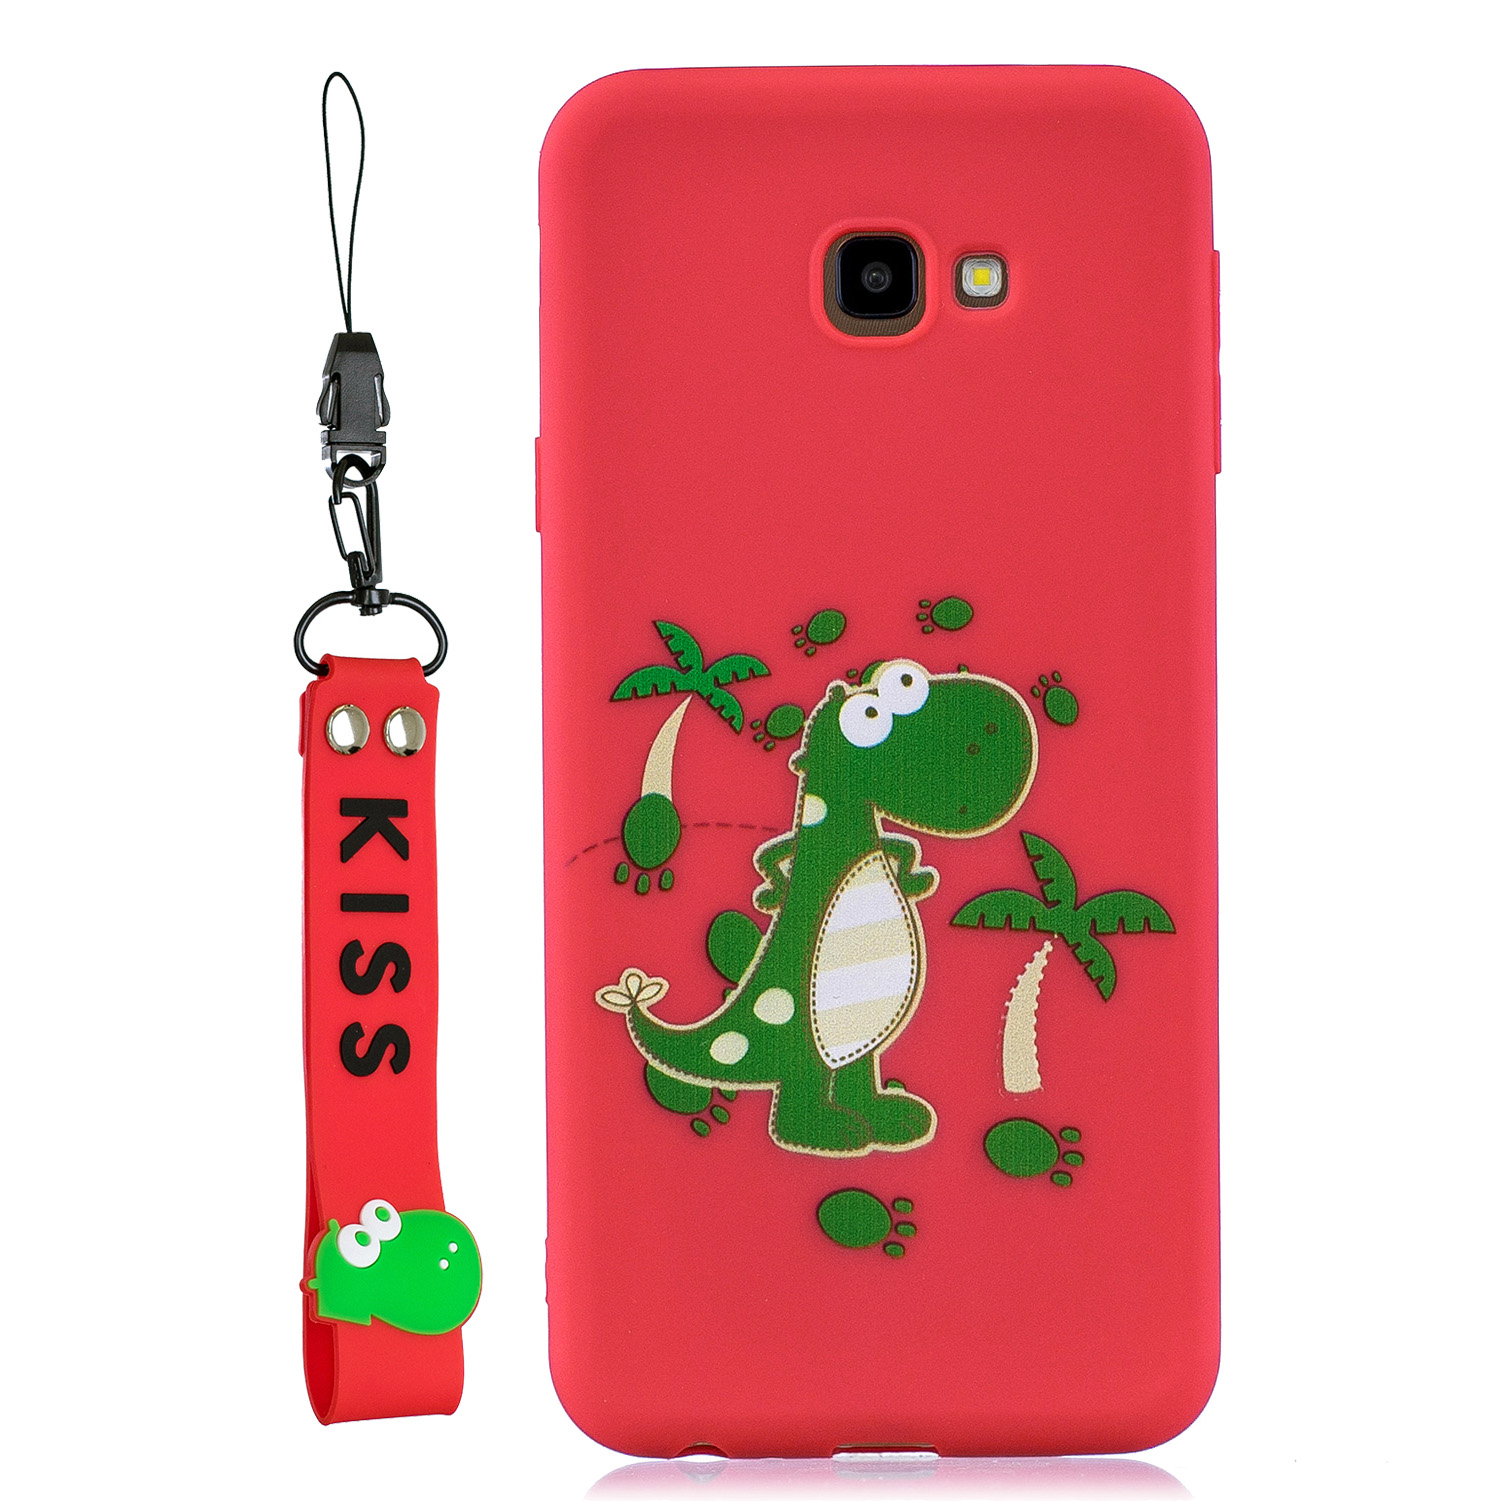 For Samsung J4 plus Cute Coloured Painted TPU Anti-scratch Non-slip Protective Cover Back Case with Lanyard red